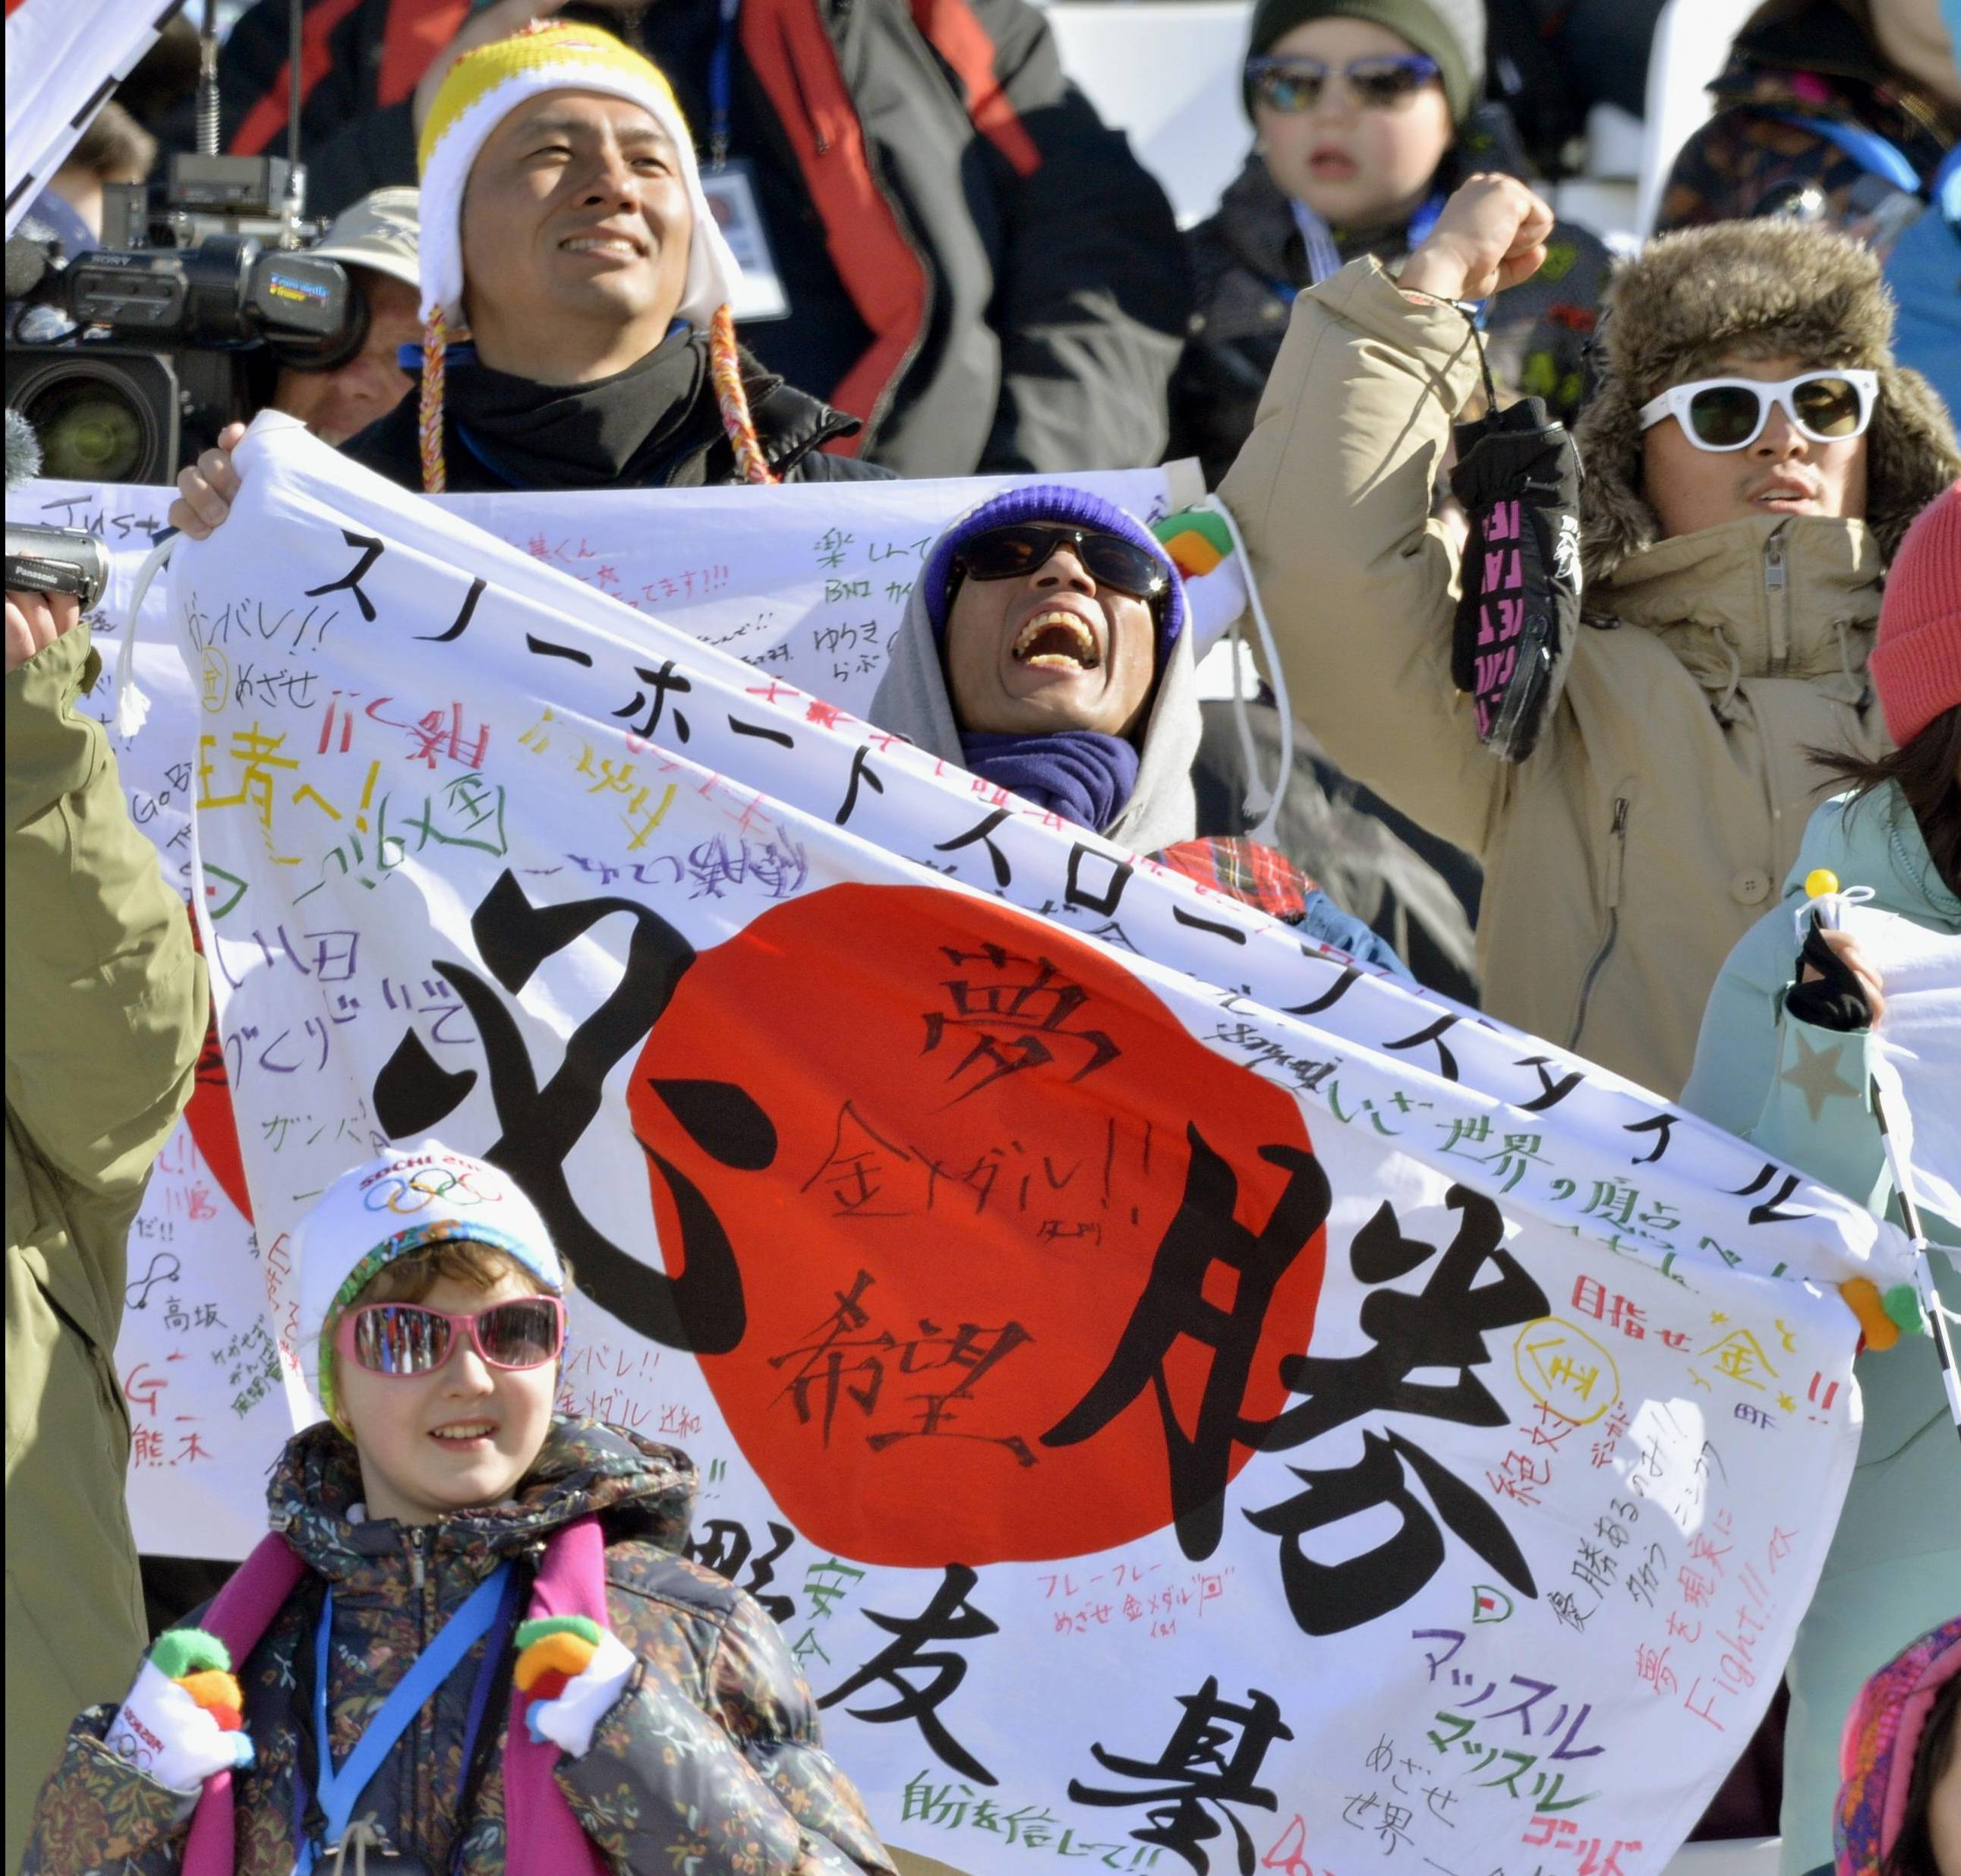 The father of Japanese snowboarder Yuki Kadano waves a signed flag during the slopestyle final Saturday.  | KYODO